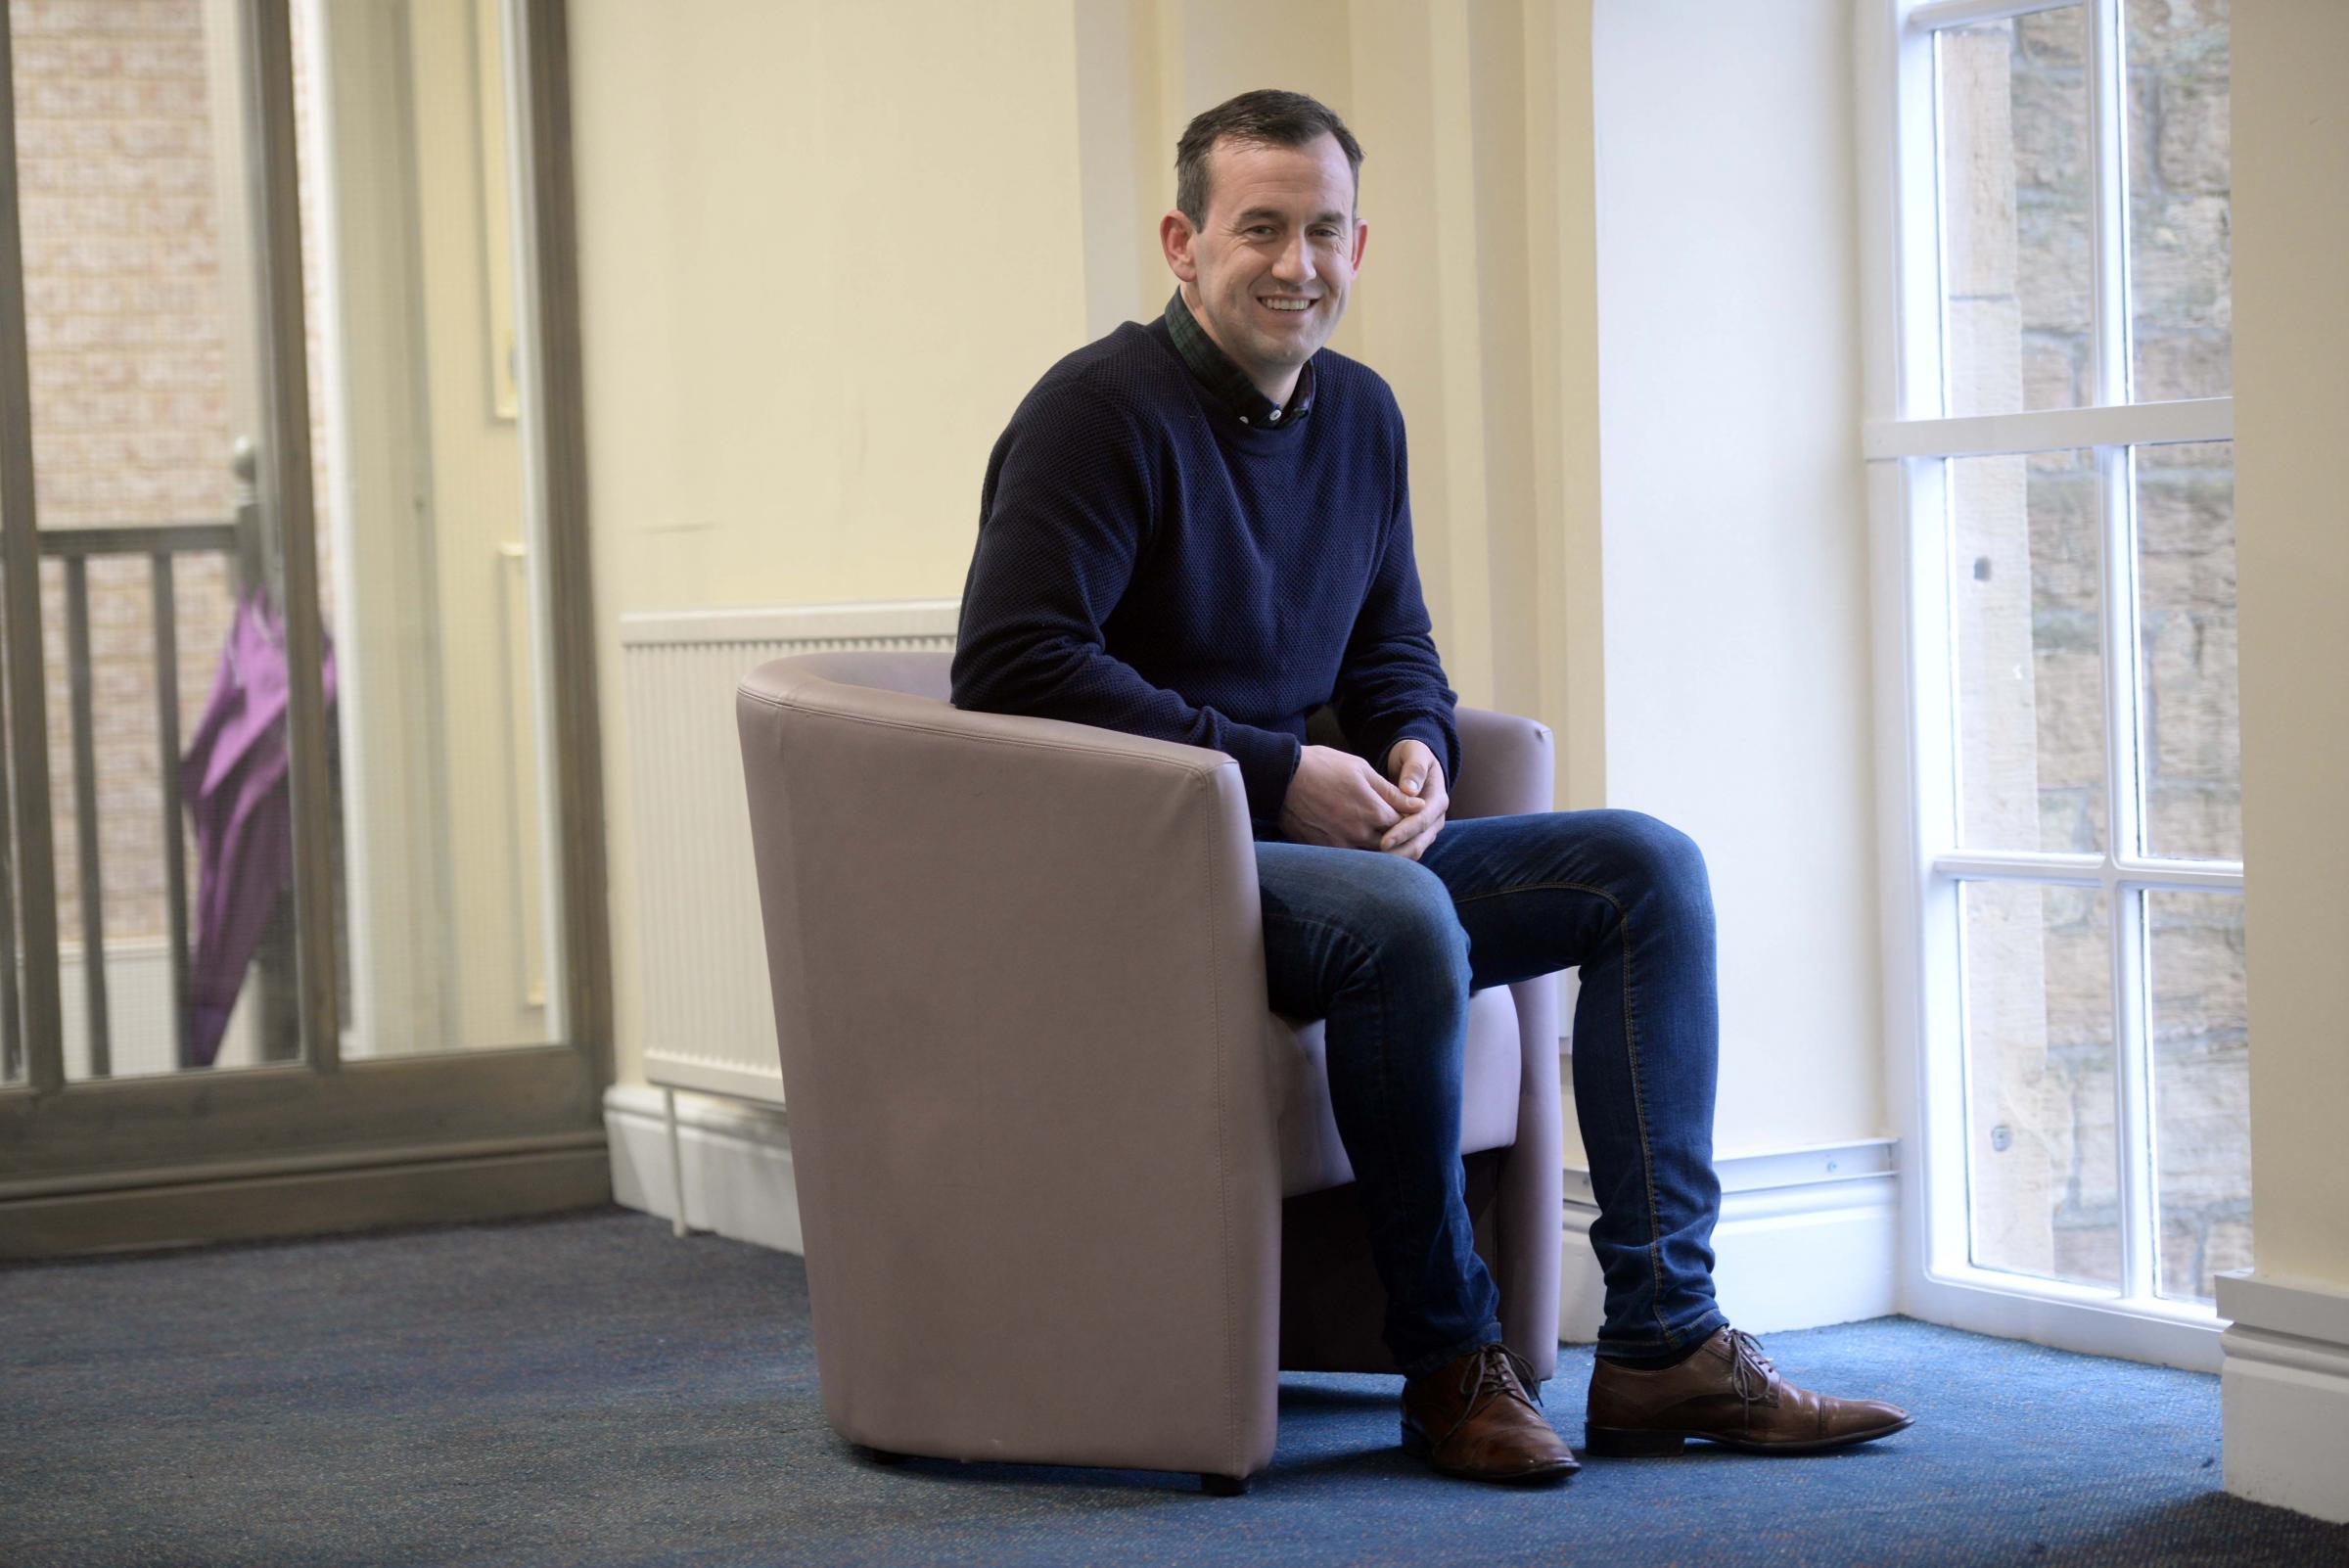 Paul Howarth pictured at his new Wellbeing Centre which the former Accrington Stanley man has opened in his hometown of Burnley Picture: TIM BRADLEY